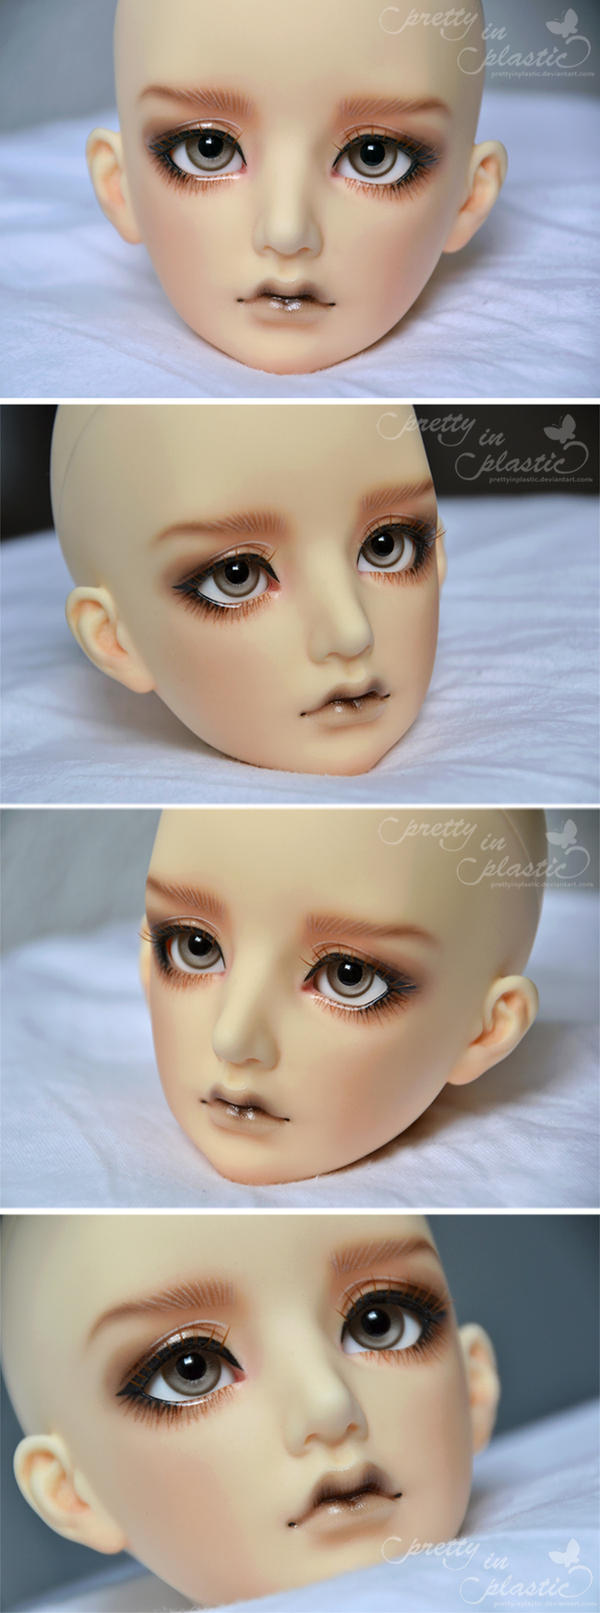 Face-Up: Maskcat Nerine (boy version) by prettyinplastic